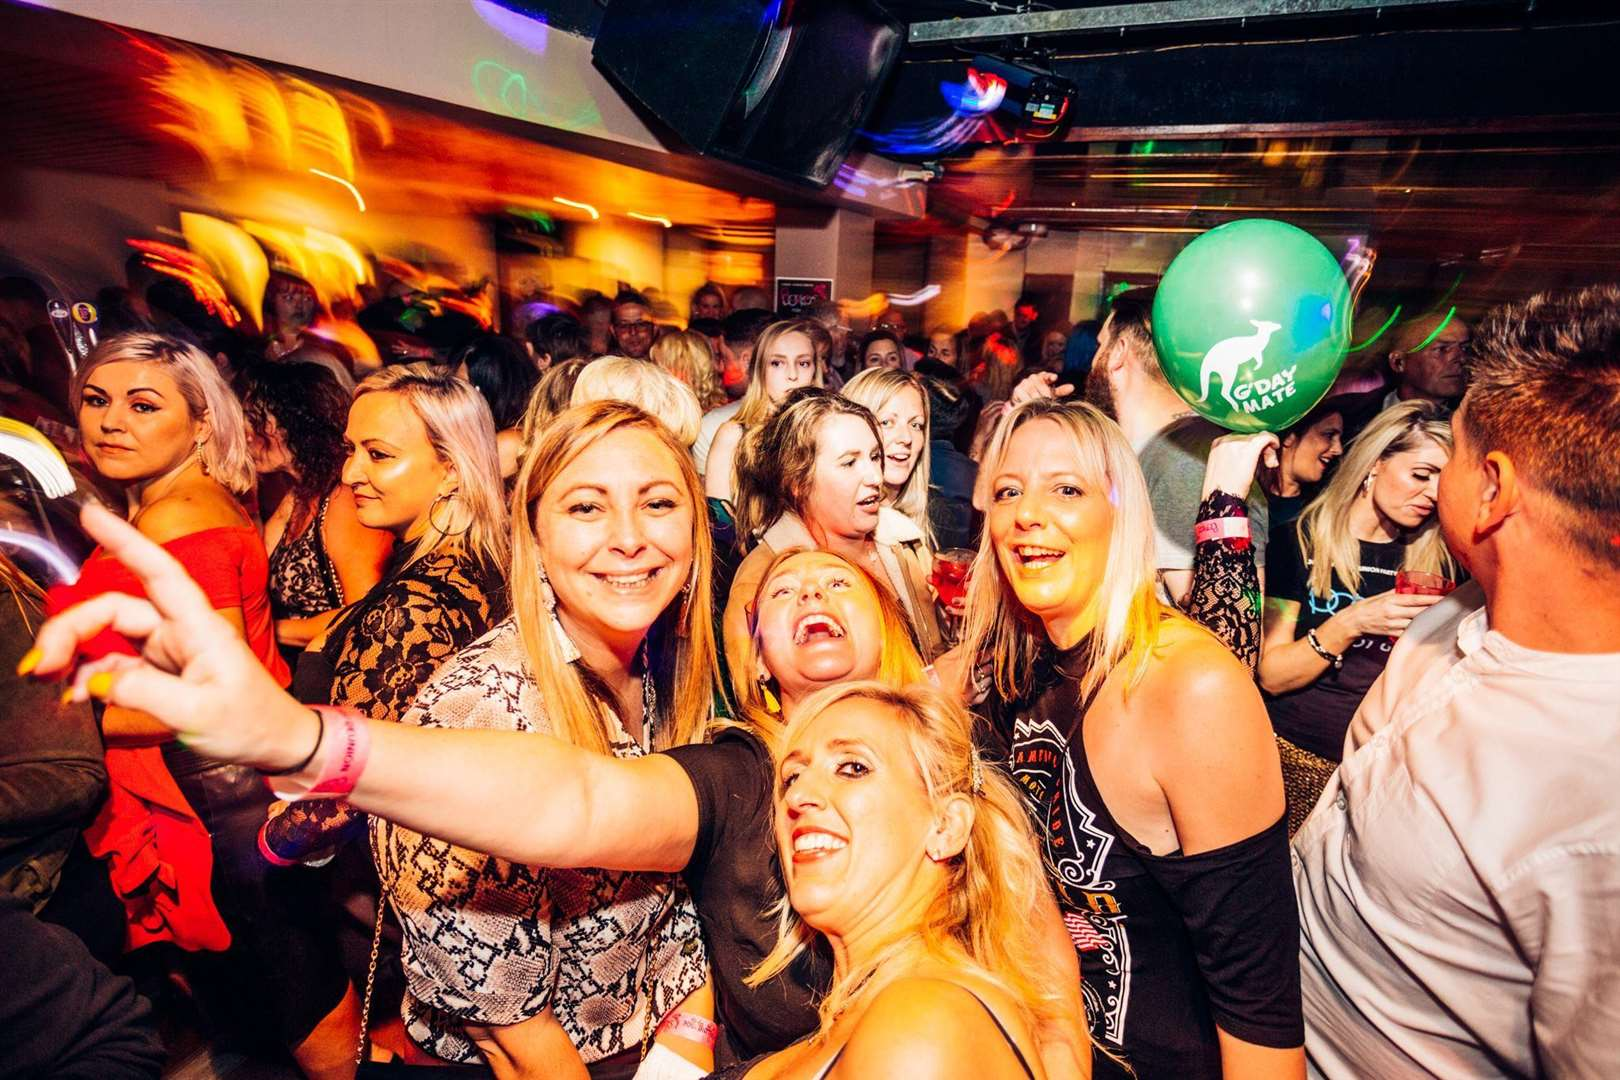 Party-goers celebrate at the Priz reunion. Picture: Dan Desborough Photography